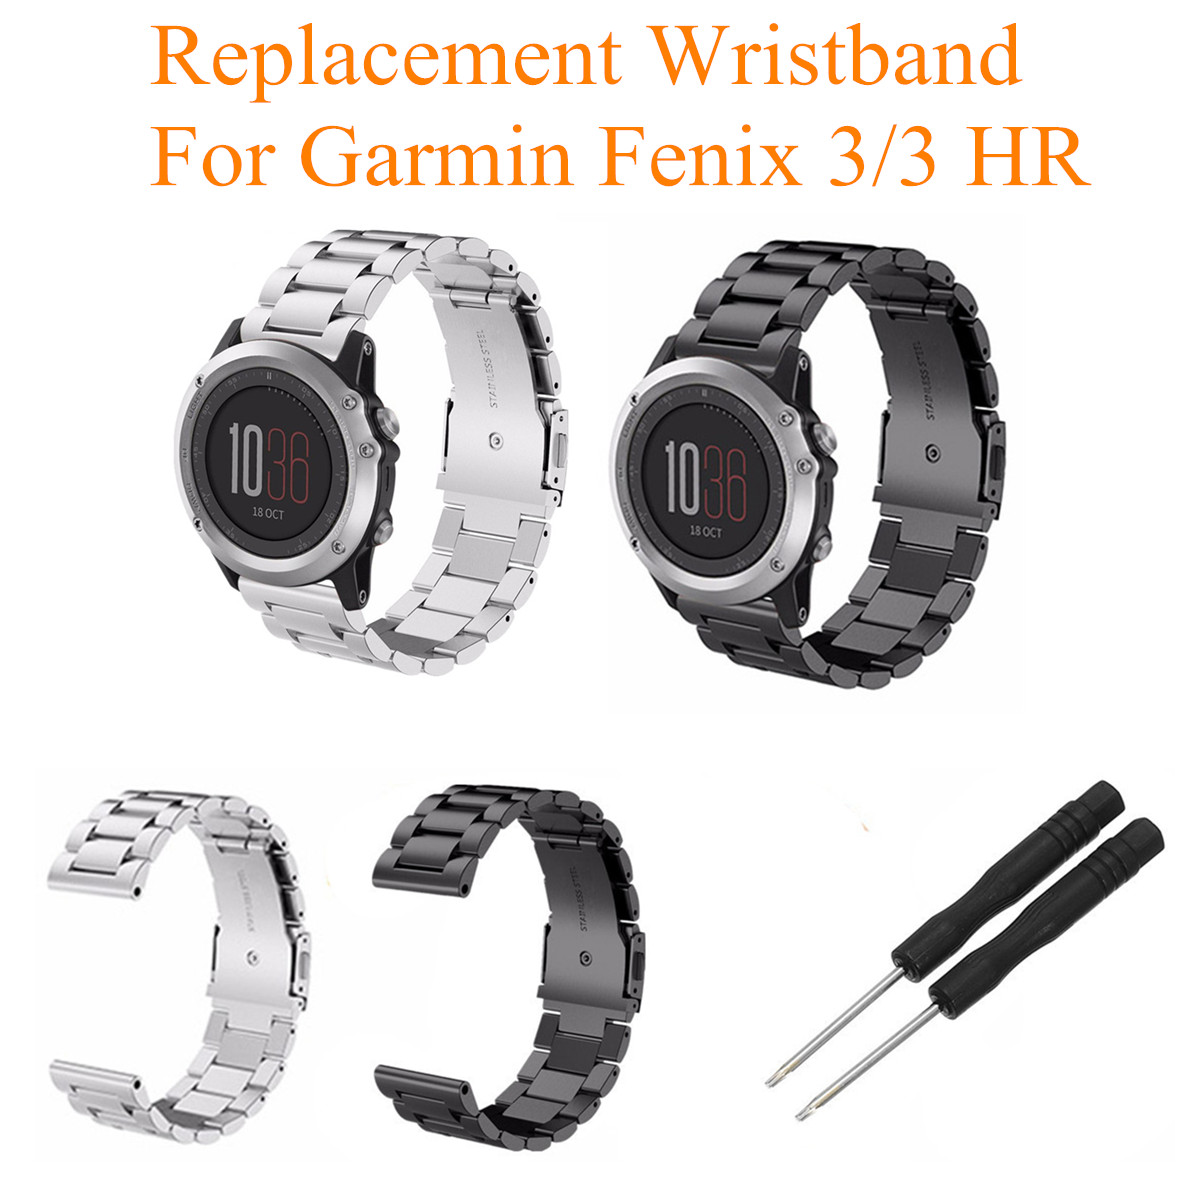 Stainless Steel Replacement Band Metal Wrist Strap For Garmin Fenix 3/3 HR Watch